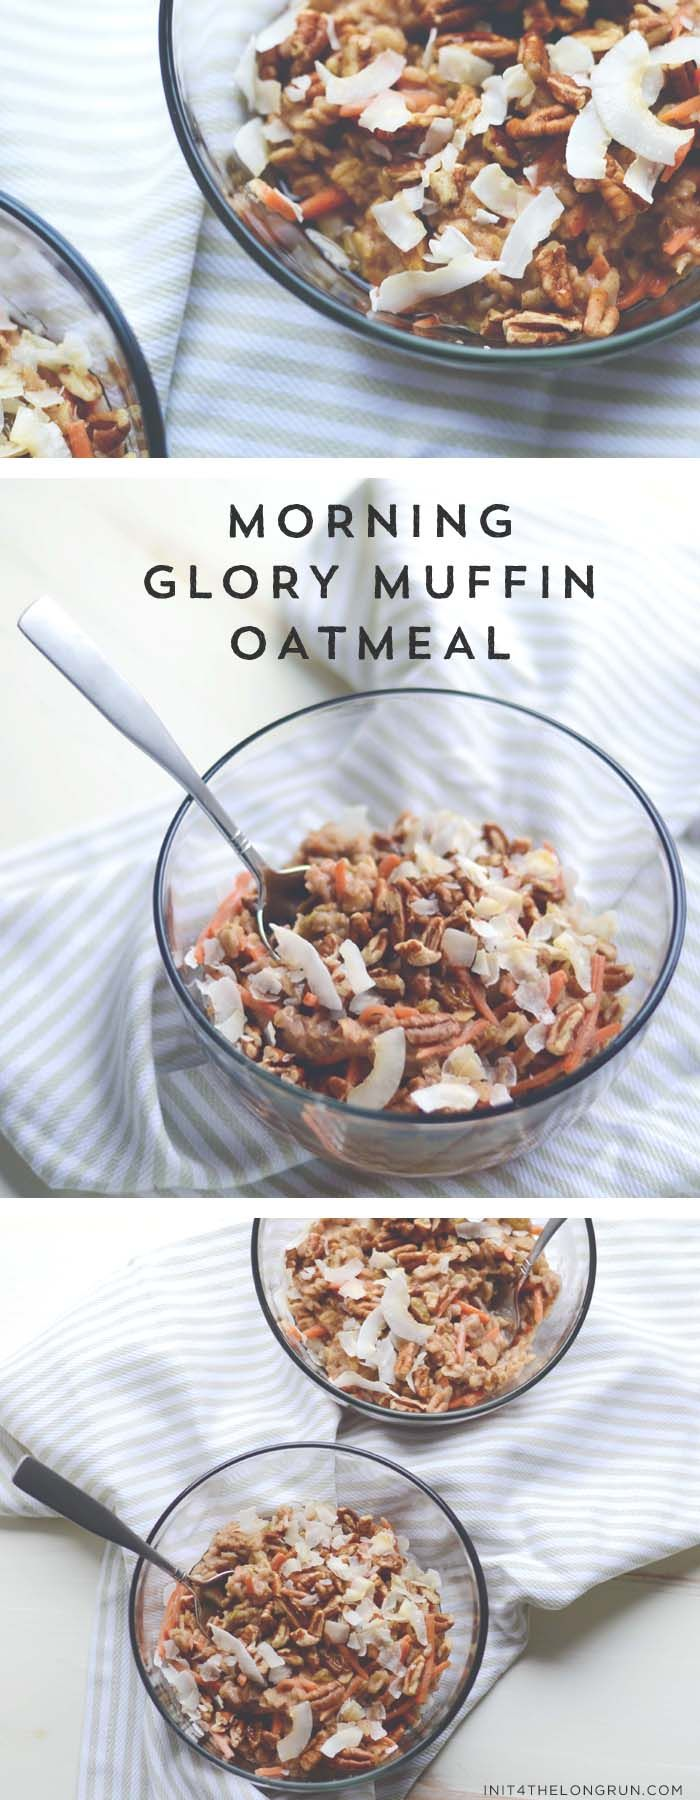 morning glory muffin oatmeal // this classic muffin is transformed into a healthy, warming oatmeal.